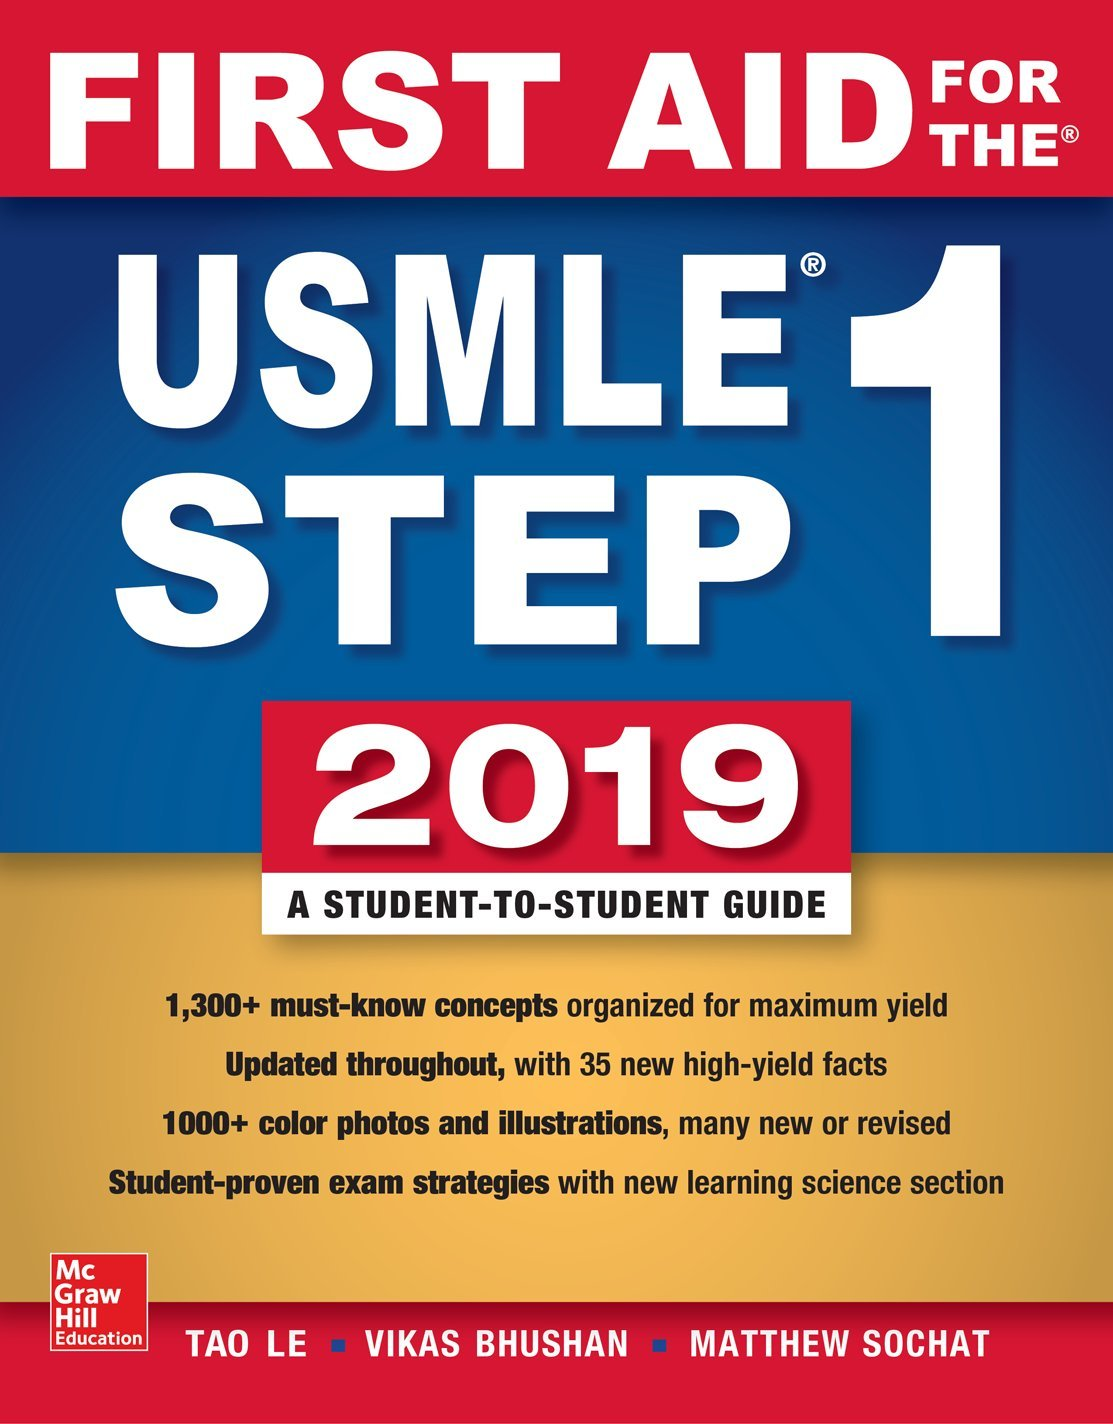 First Aid for the USMLE Step 1 2019, Twenty-ninth edition: Tao Le